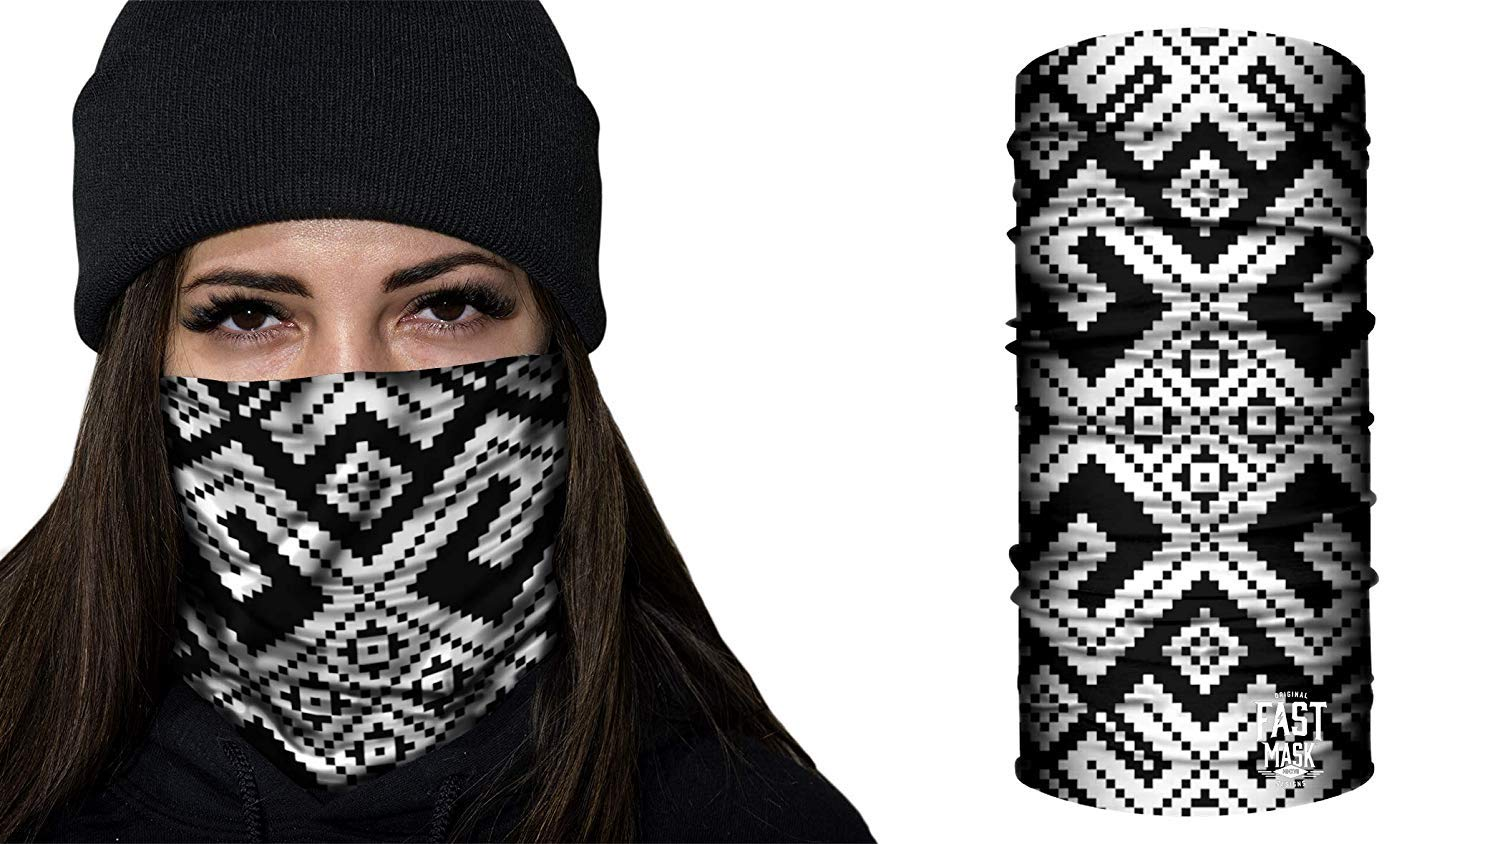 Fast Mask Face Shield for Men, Women & Kids. 100% Microfiber, Windproof with UV Outdoor Sun Protection. - Canada Flag